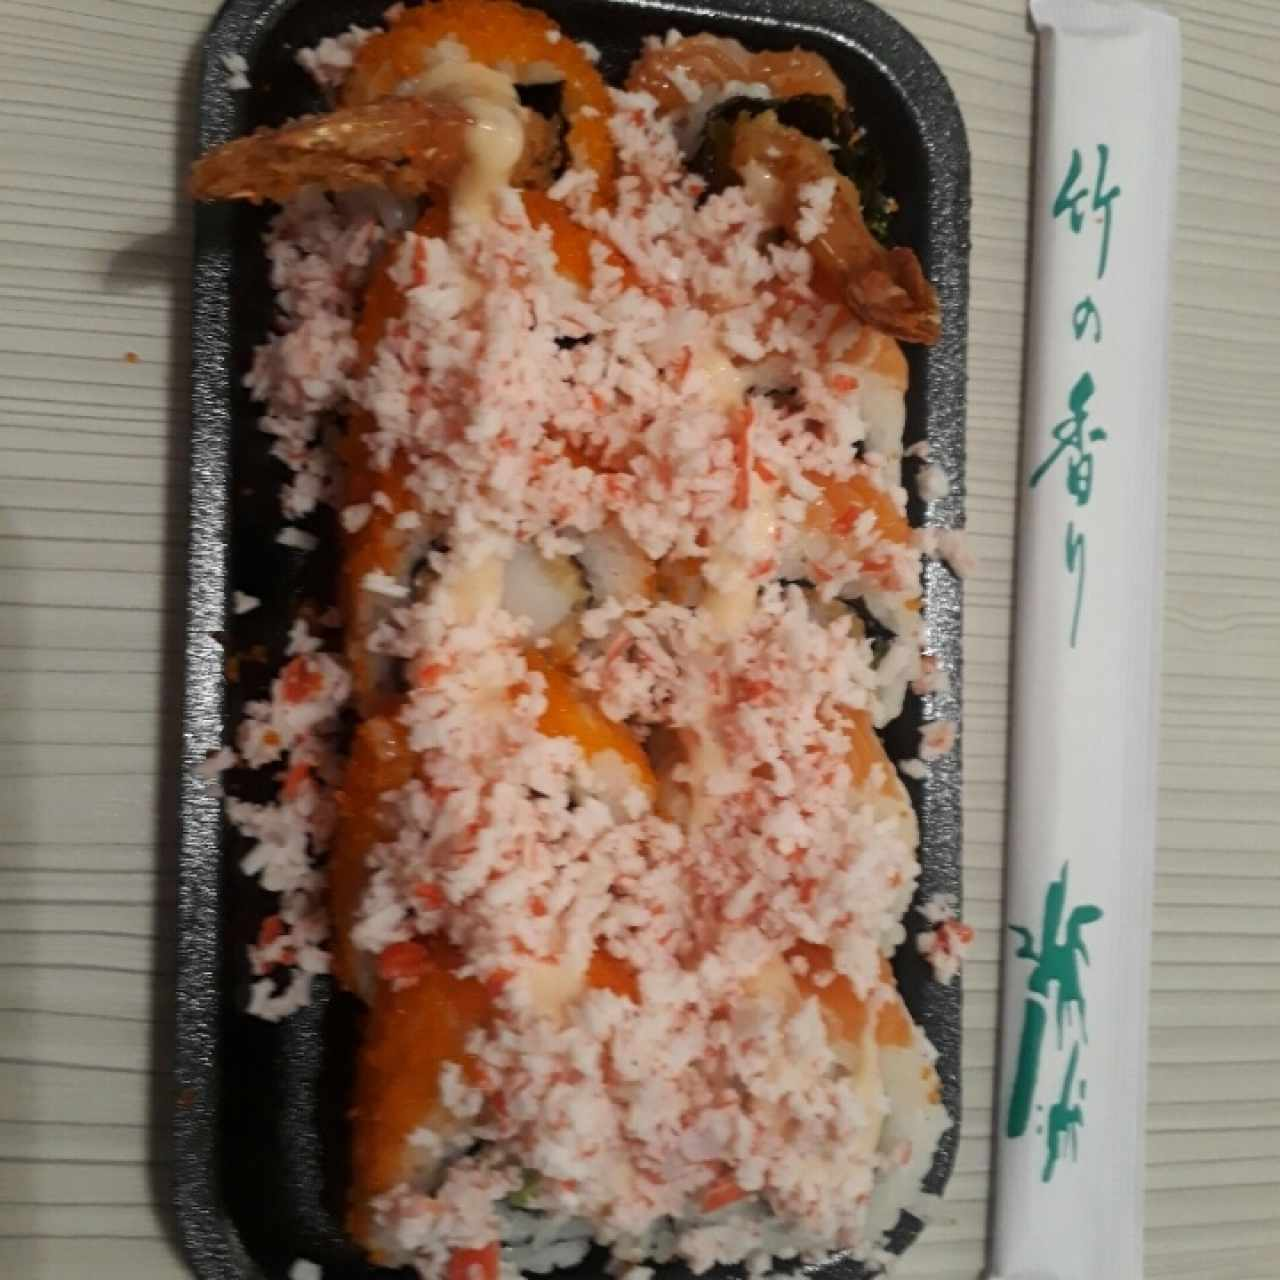 Samurai Roll